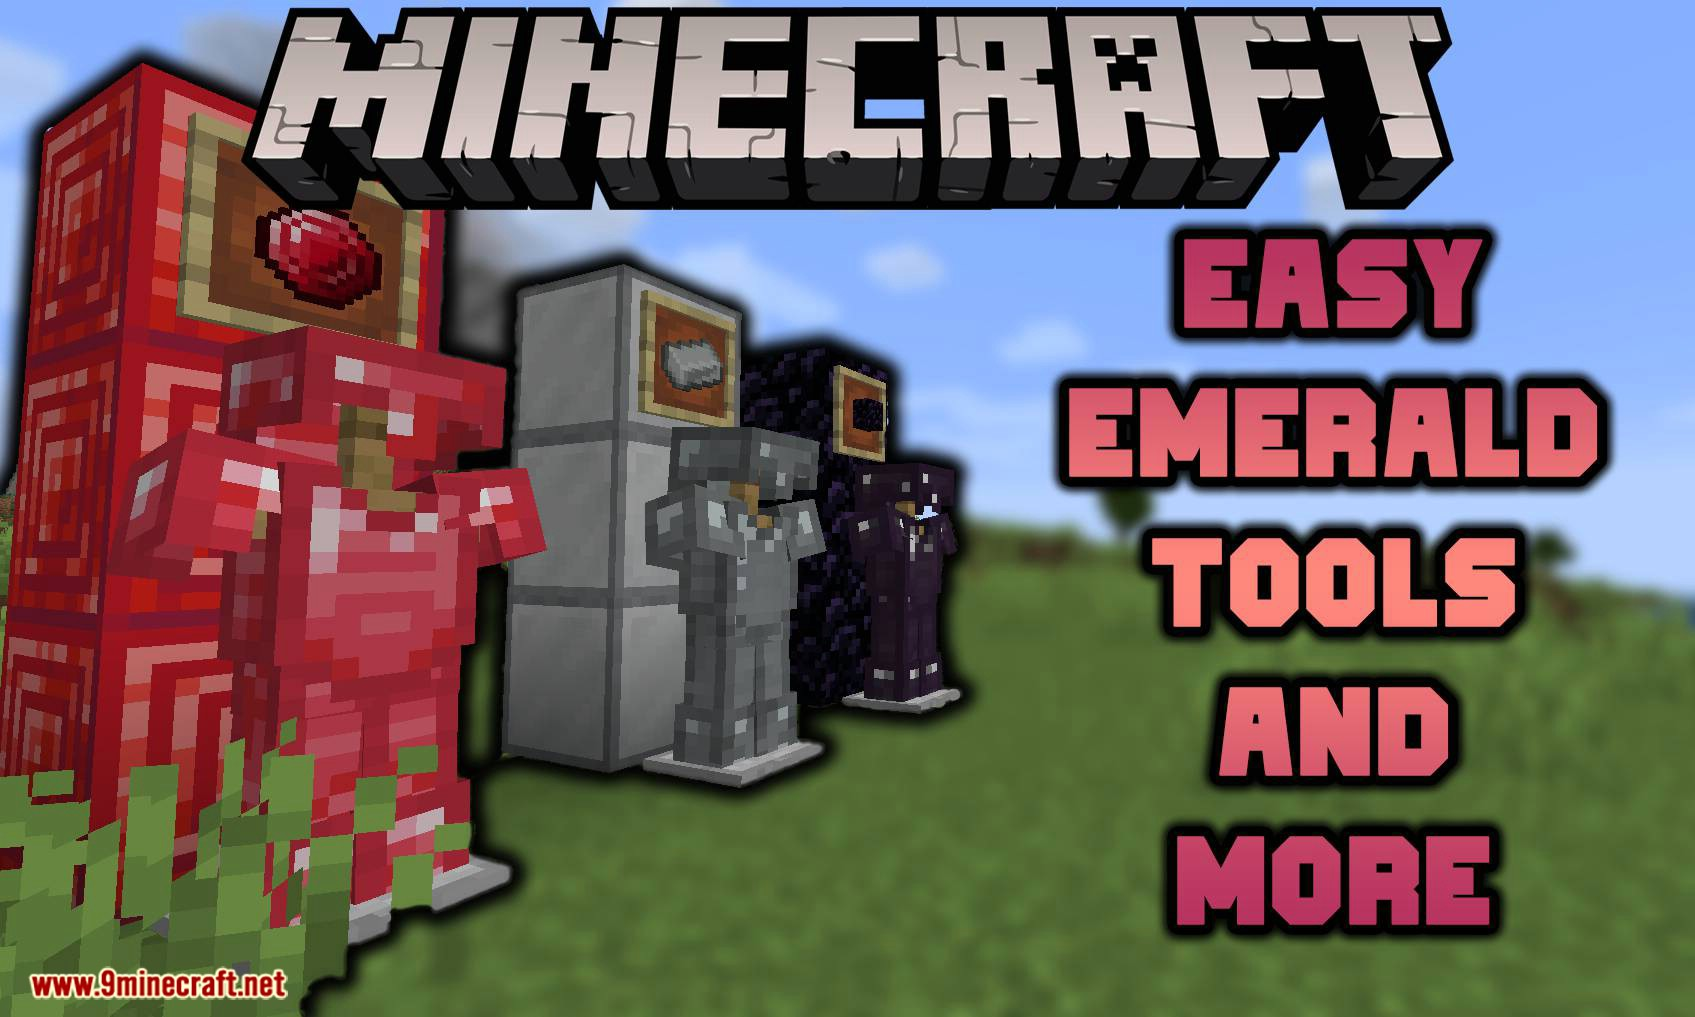 Easy Emerald Tools _ More Farbic mod for minecraft logo